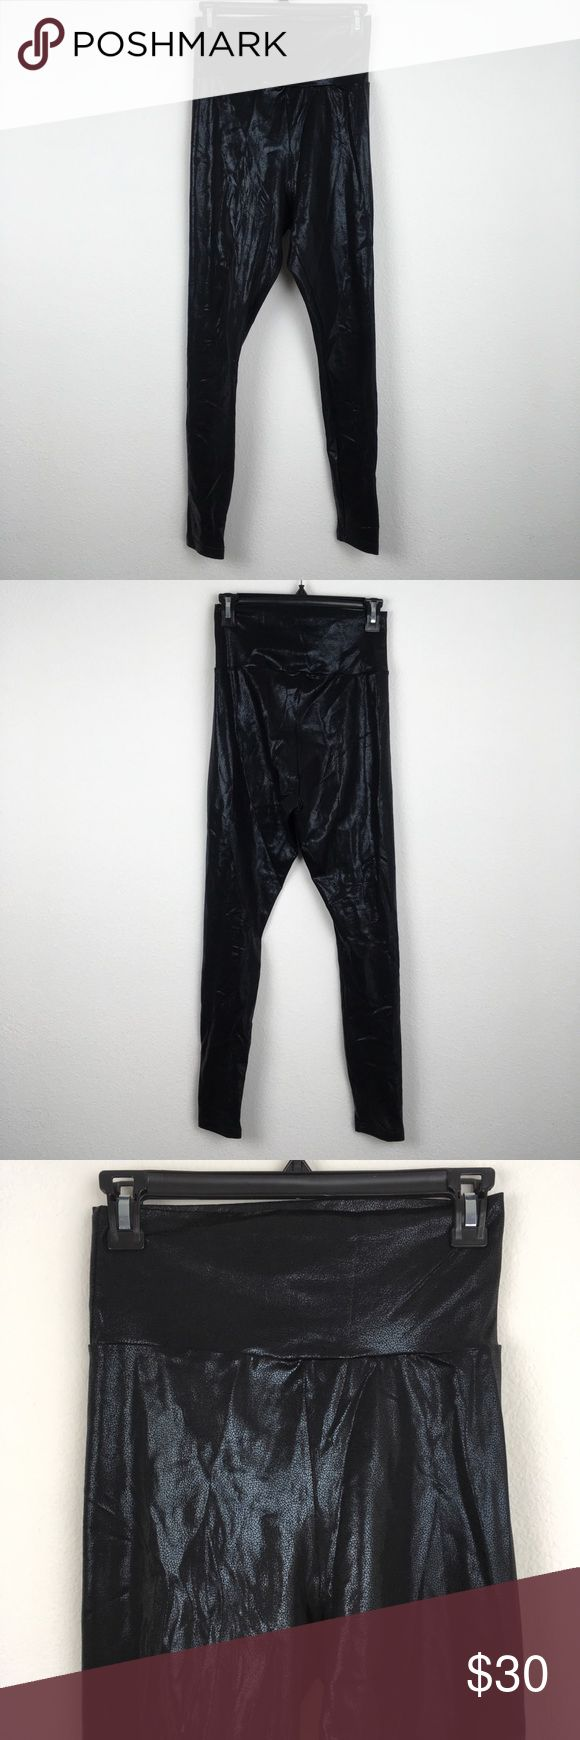 "[American Apparel] Black High-Waist Shiny Leggings Ultra high-waisted American Apparel liquid leggings. Printed and shiny. Super stretchy. Excellent used condition, no flaws, non-smoking home.   Measurements laid flat - Waist 12.5"" - Rise 13.5"" - Inseam 28""  D45 American Apparel Pants Leggings"